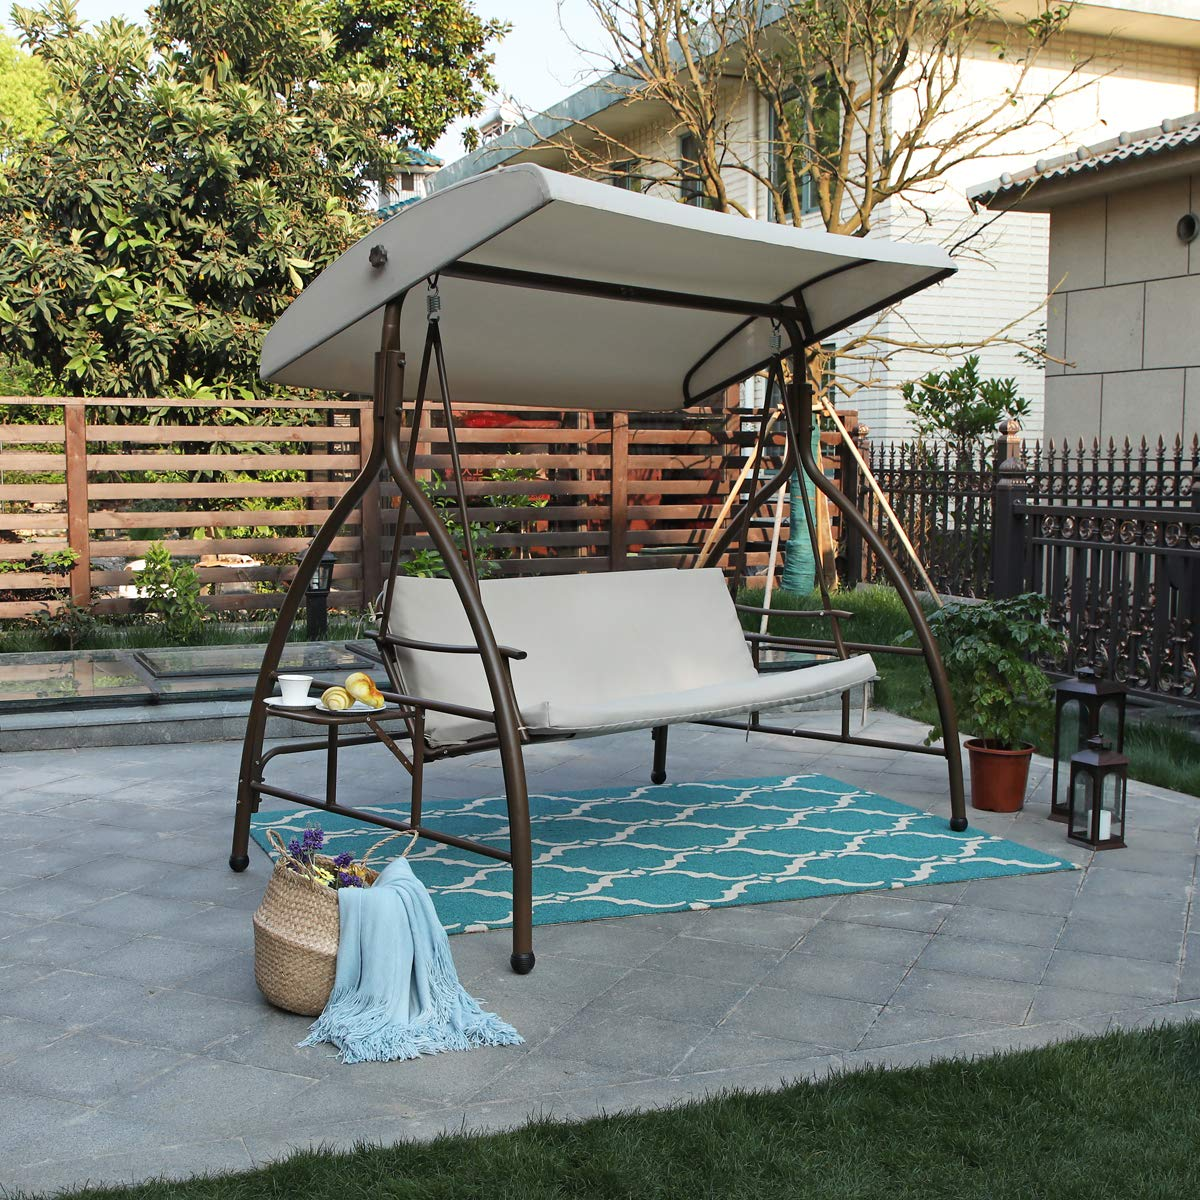 Alphamarts coupon: MFSTUDIO 3 Person Patio Swing Chair Glider with Side Table 3 Person Patio Swing Chair Glider with Side Table & Canopy